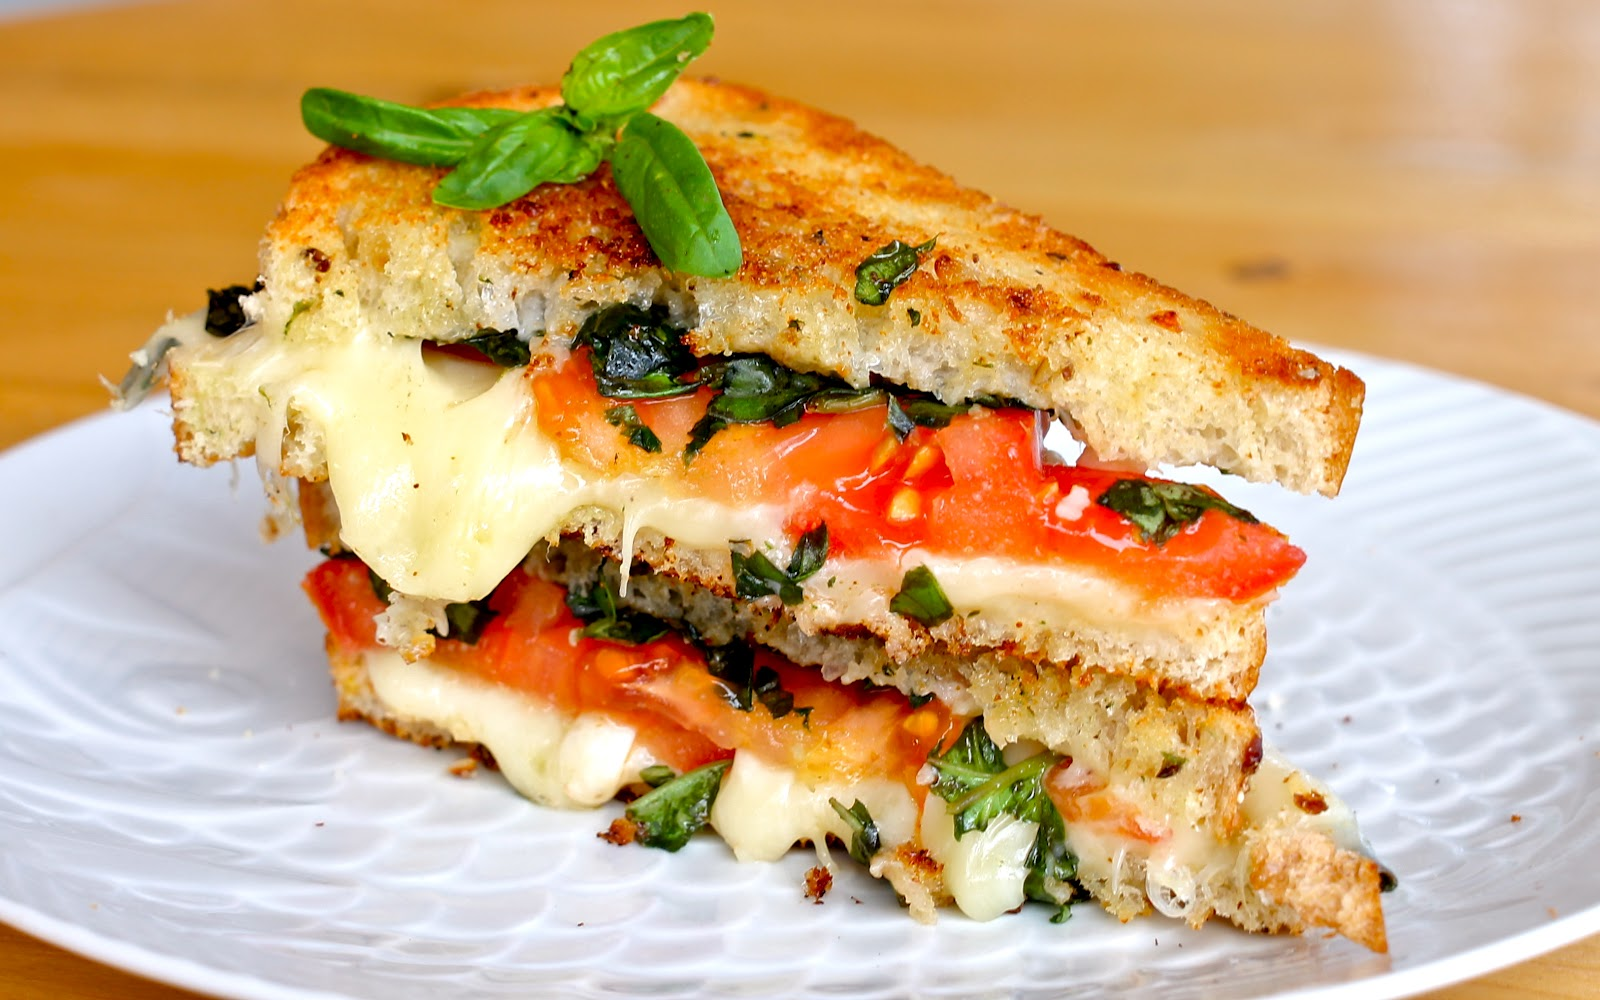 Yammie's Noshery: Caprese Grilled Cheese